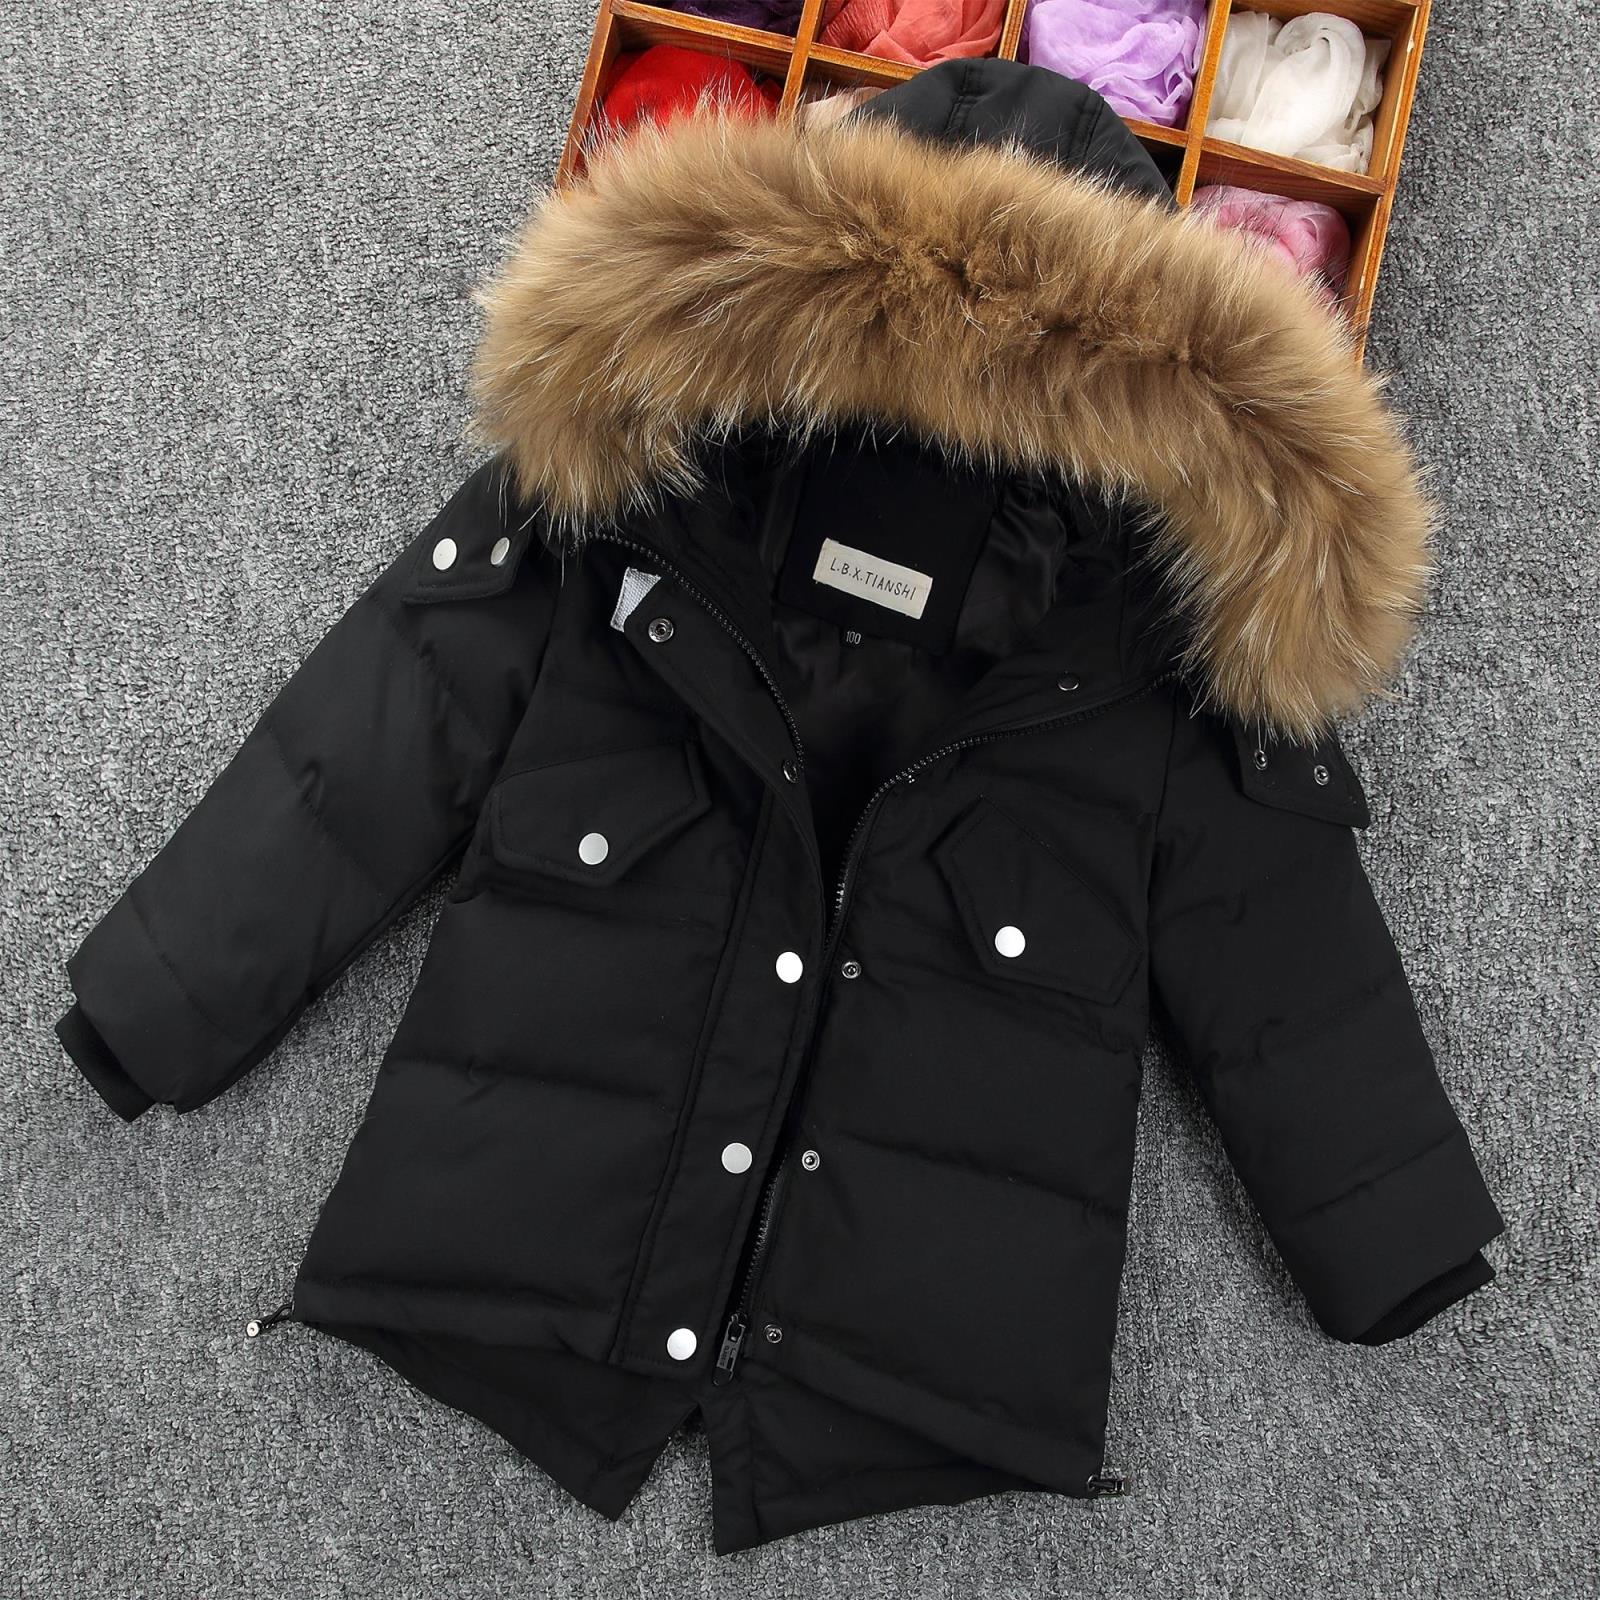 Winter Down Jacket Parka Girl Fur Hooded Thicken Coats Padded Warm Children Clothing Snow Wear Kids Outerwear&Coats bjcjwf 2017 winter jacket women wadded long parkas female outerwear hooded coat cotton padded fur collar parka thicken warm 1pc